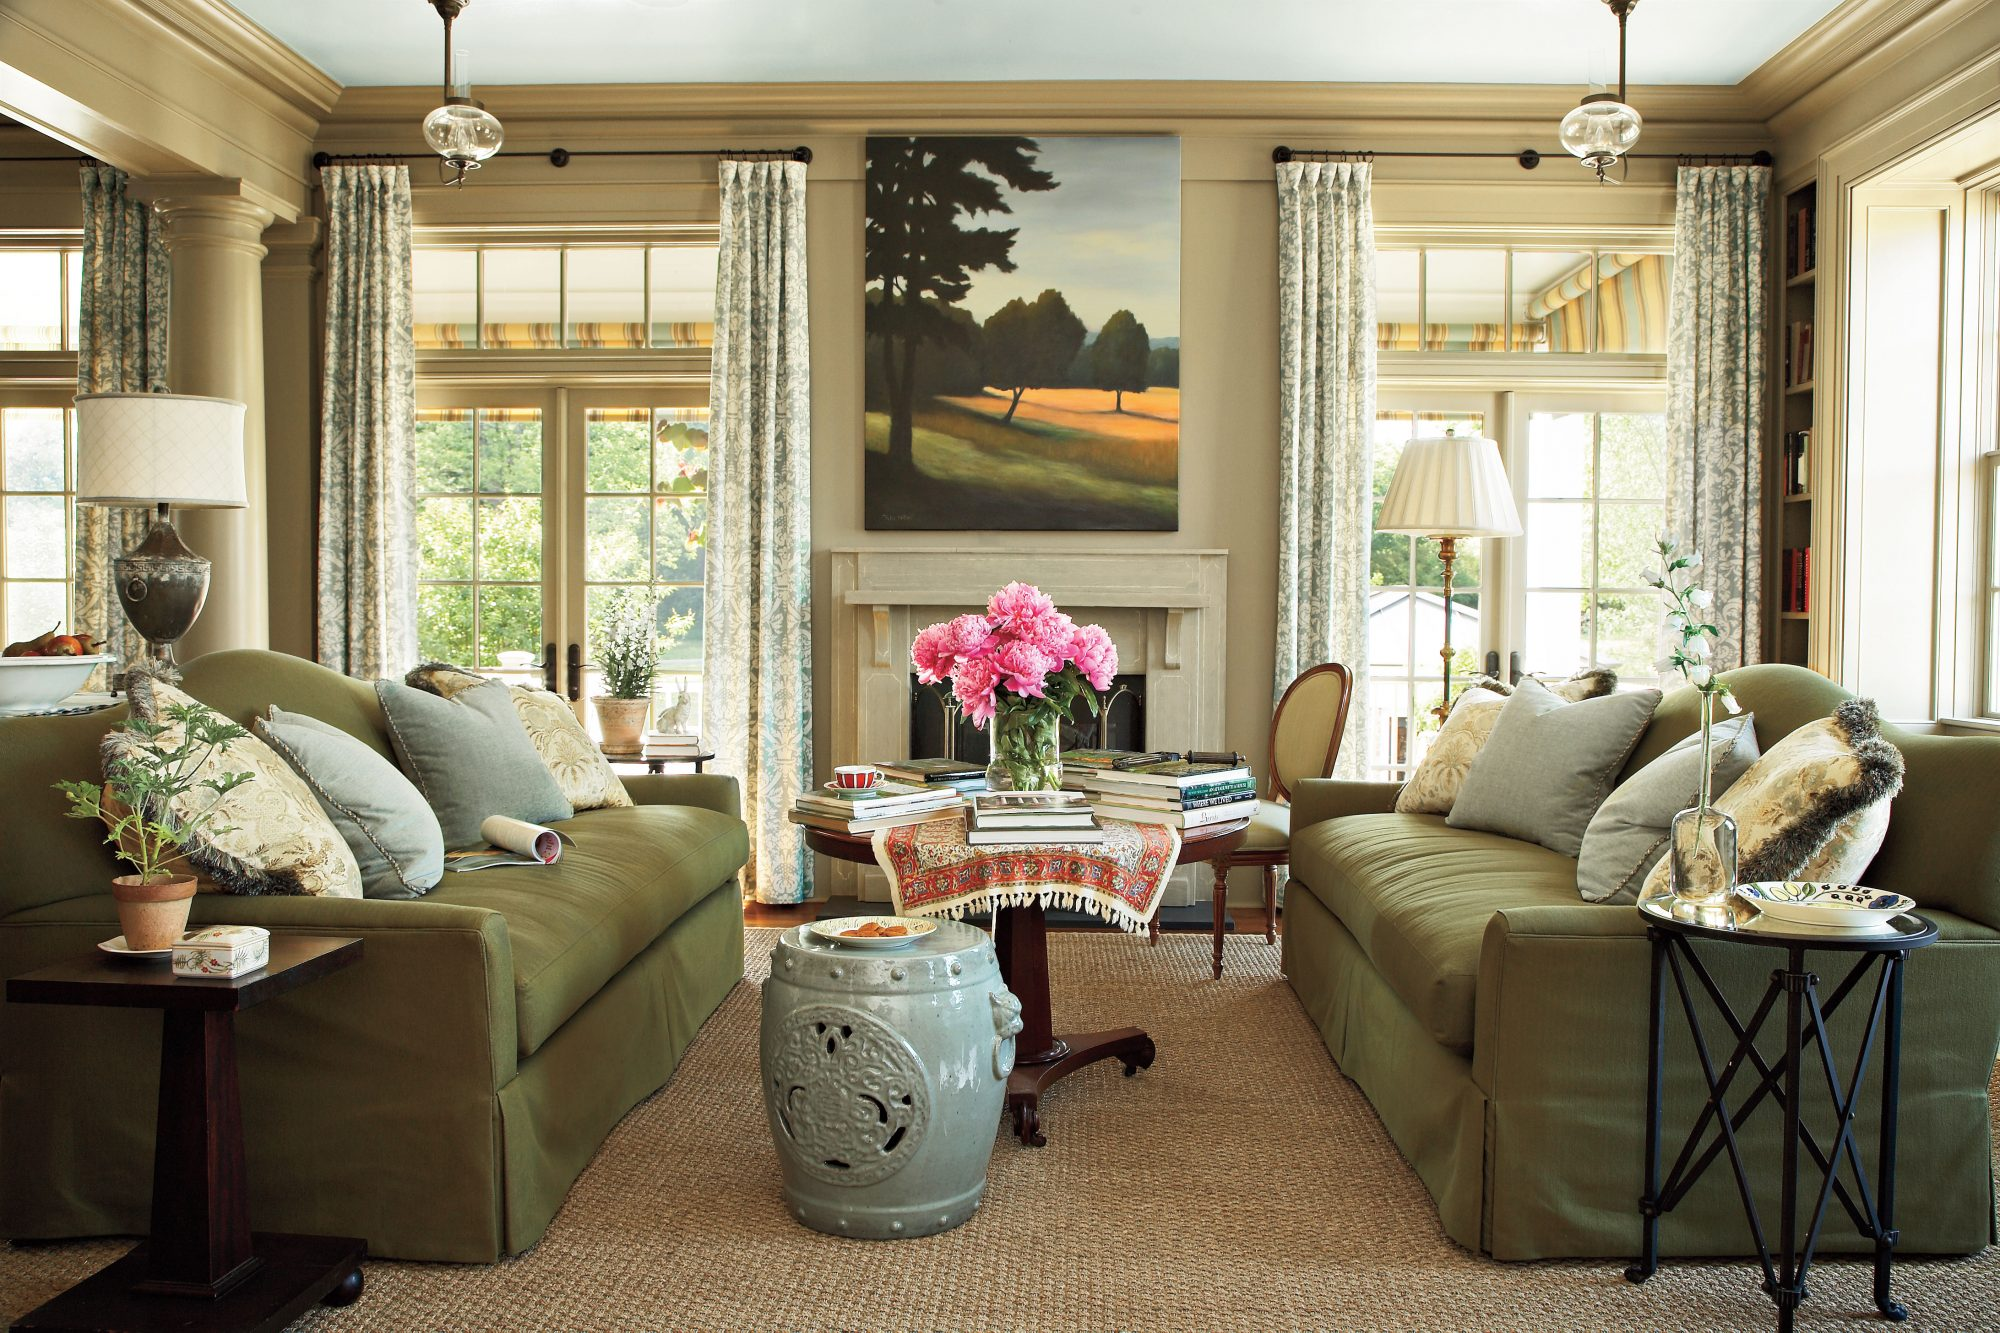 Living Room Decorating Ideas Southern Living - Living room decorating ideas traditional